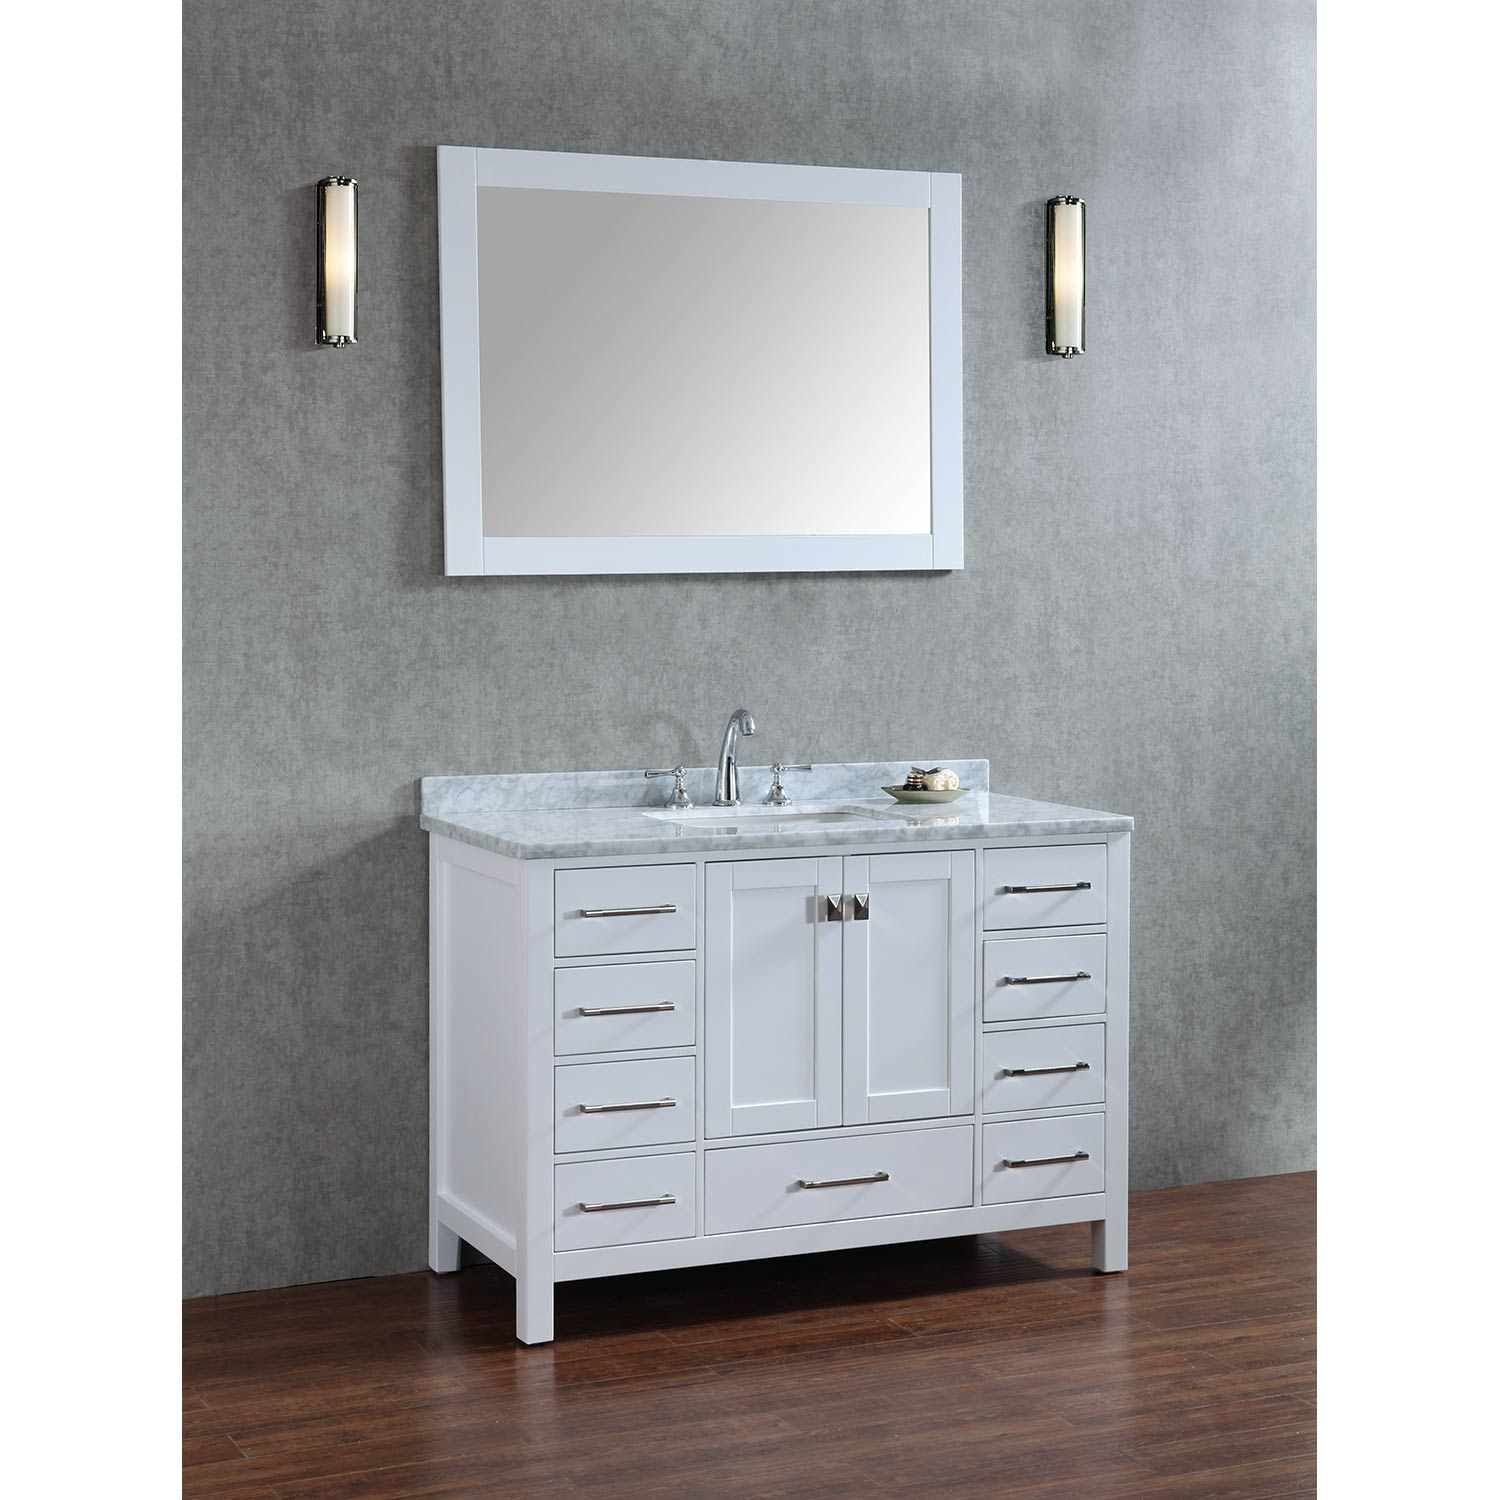 Buy vincent 48 inch solid wood single bathroom vanity in for Restroom vanity